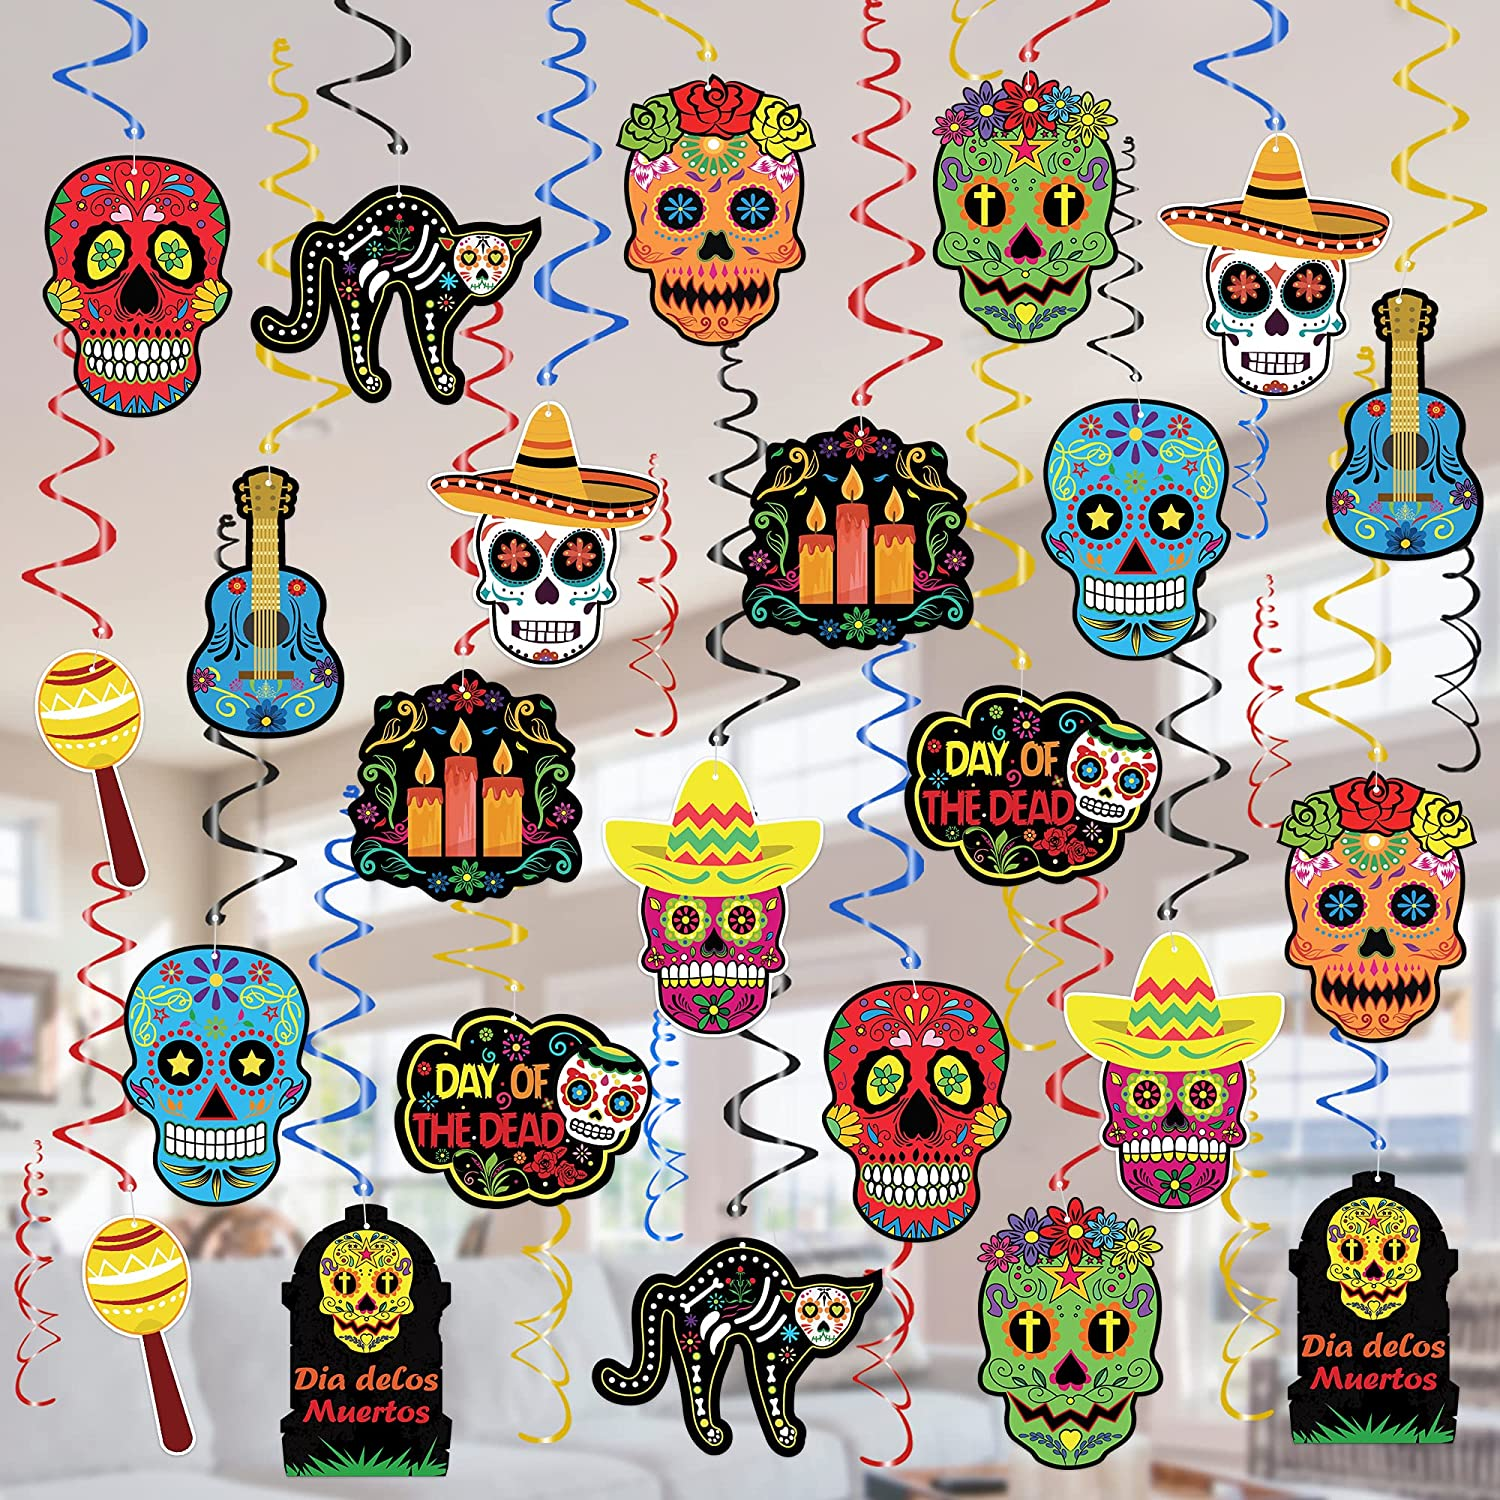 Tifeson Día de Los Muertos Decorations Hanging Swirls - 36 Pcs Mexican Day of The Dead Sugar Skull Ceiling Swirls for Coco Theme Party, Cinco de Mayo, Halloween Sugar Skull Party Decorations Supplies